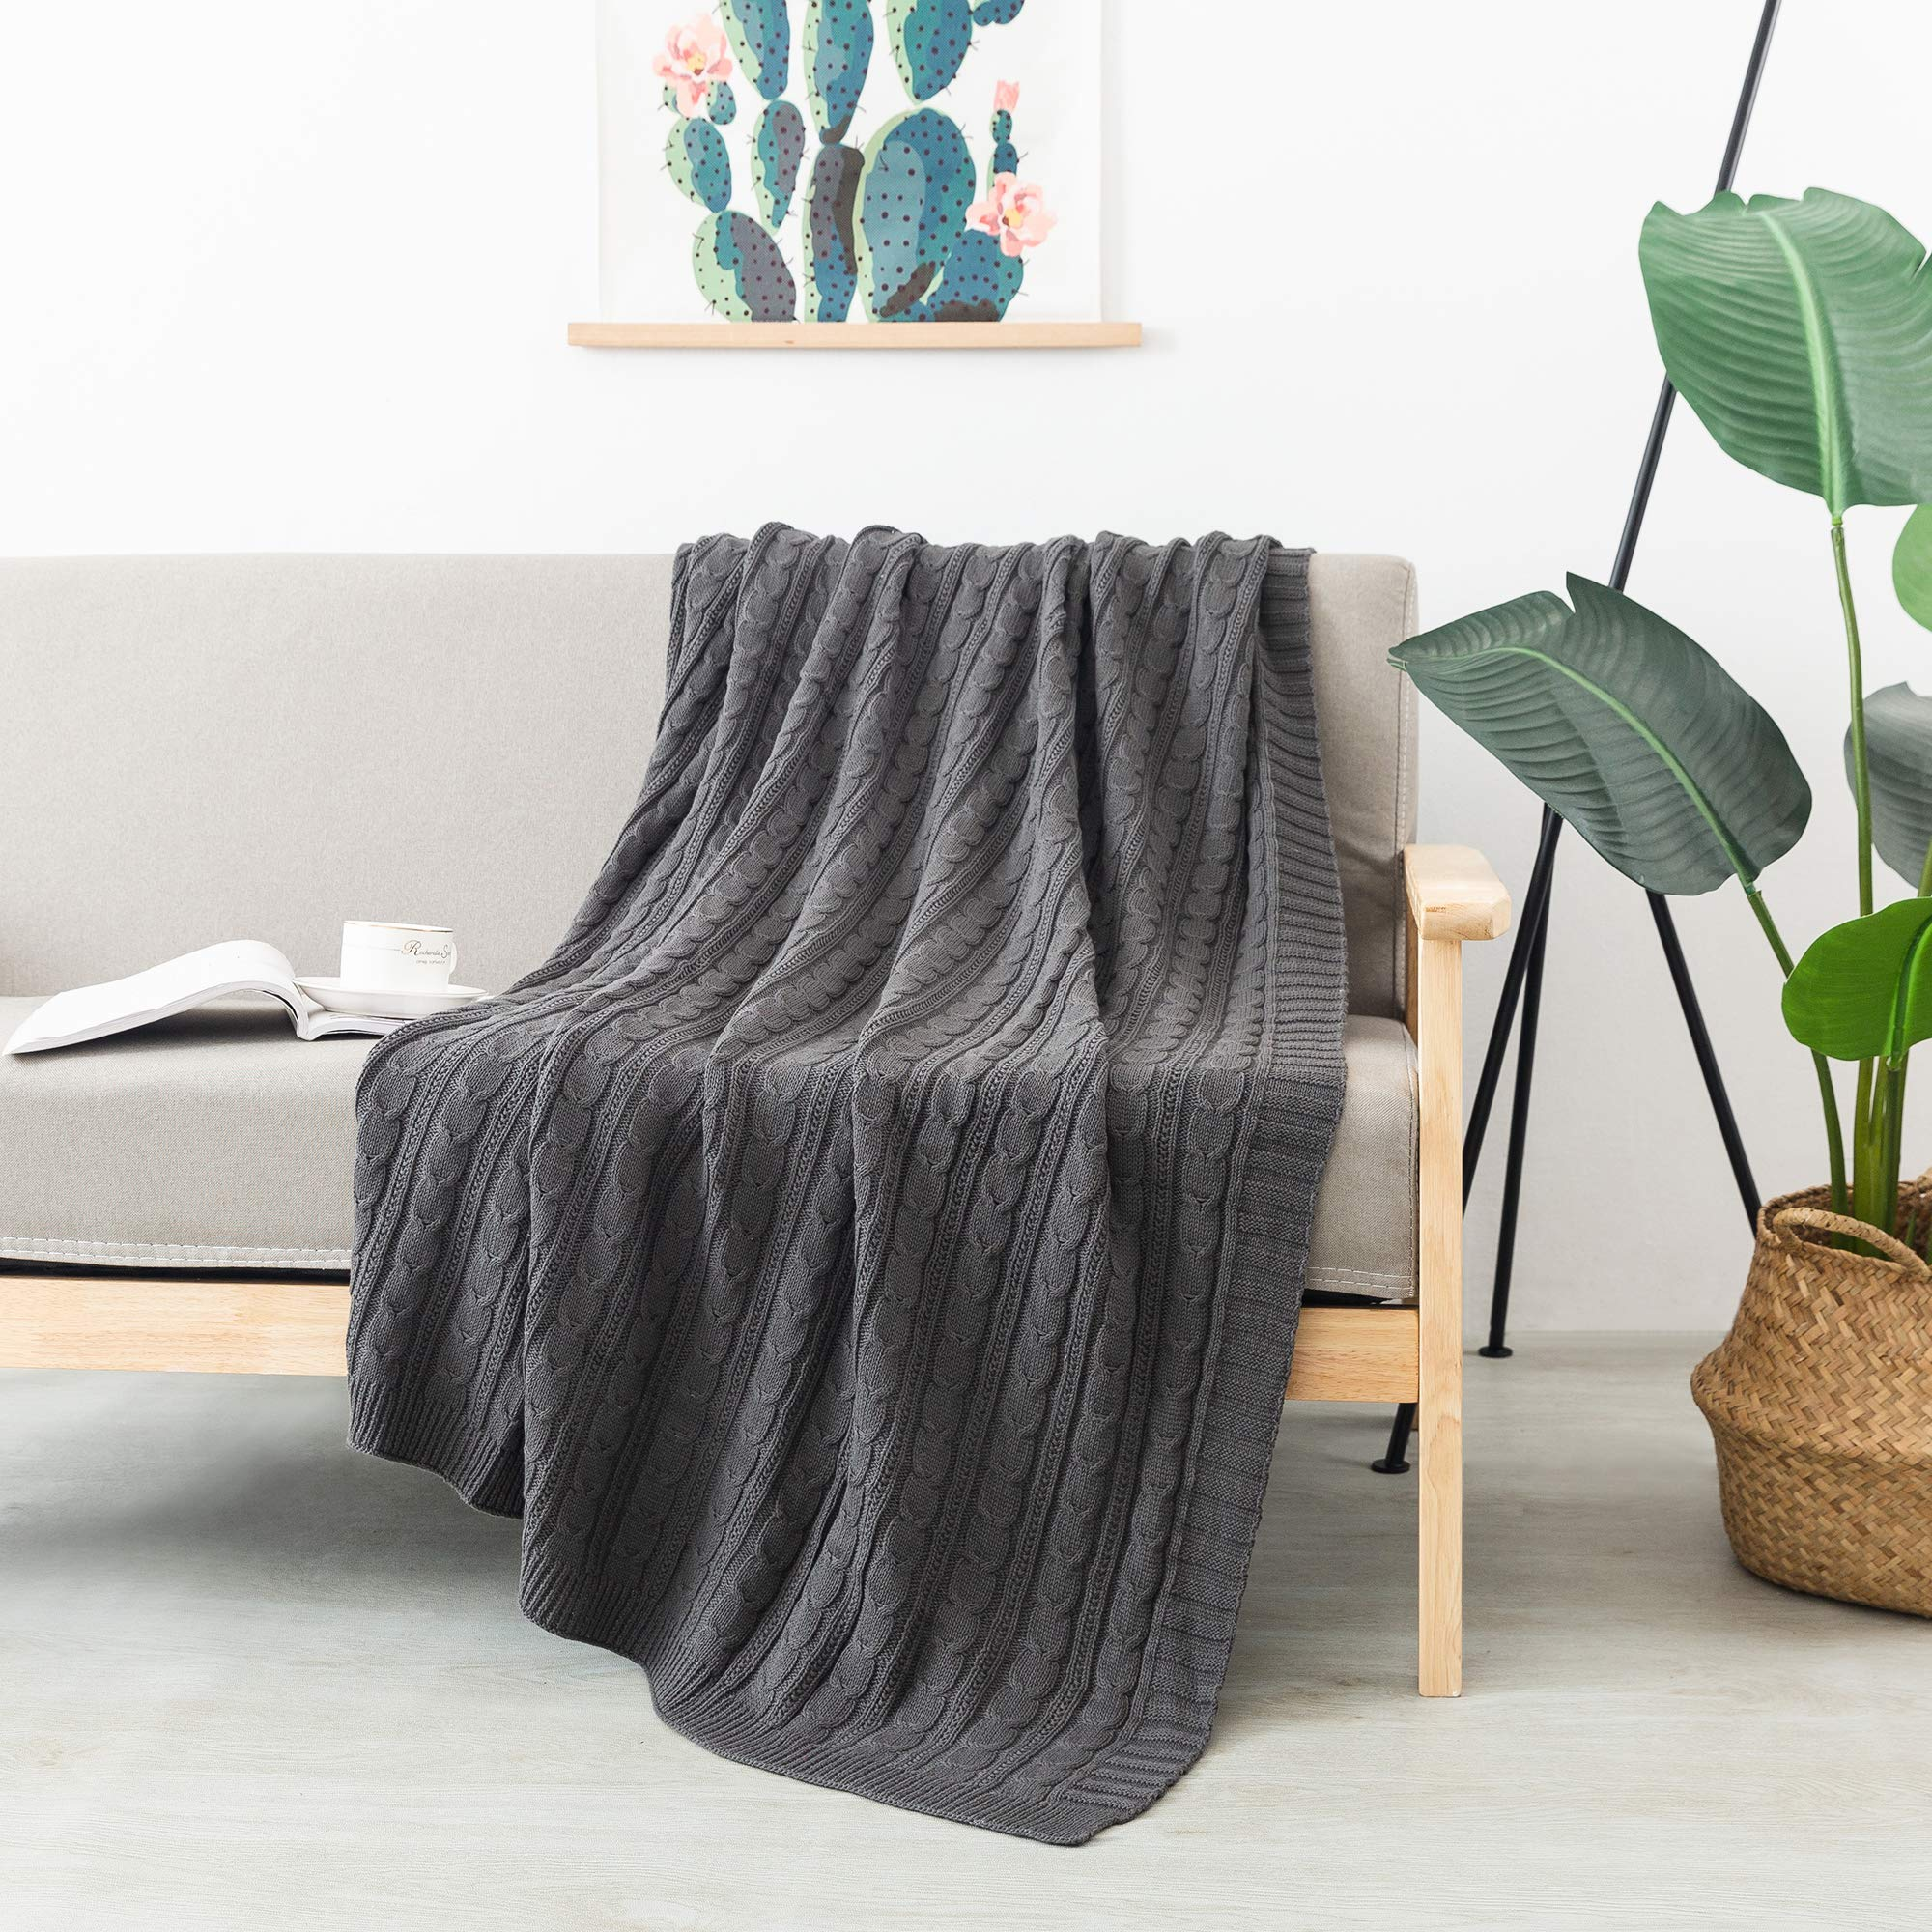 """FELIX ANGELA HOME 100% Cotton Knitted Throw, Soft Lightweight Throws for Couch Sofa Chair Bed, 50"""" x 60"""" (Charcoal)"""